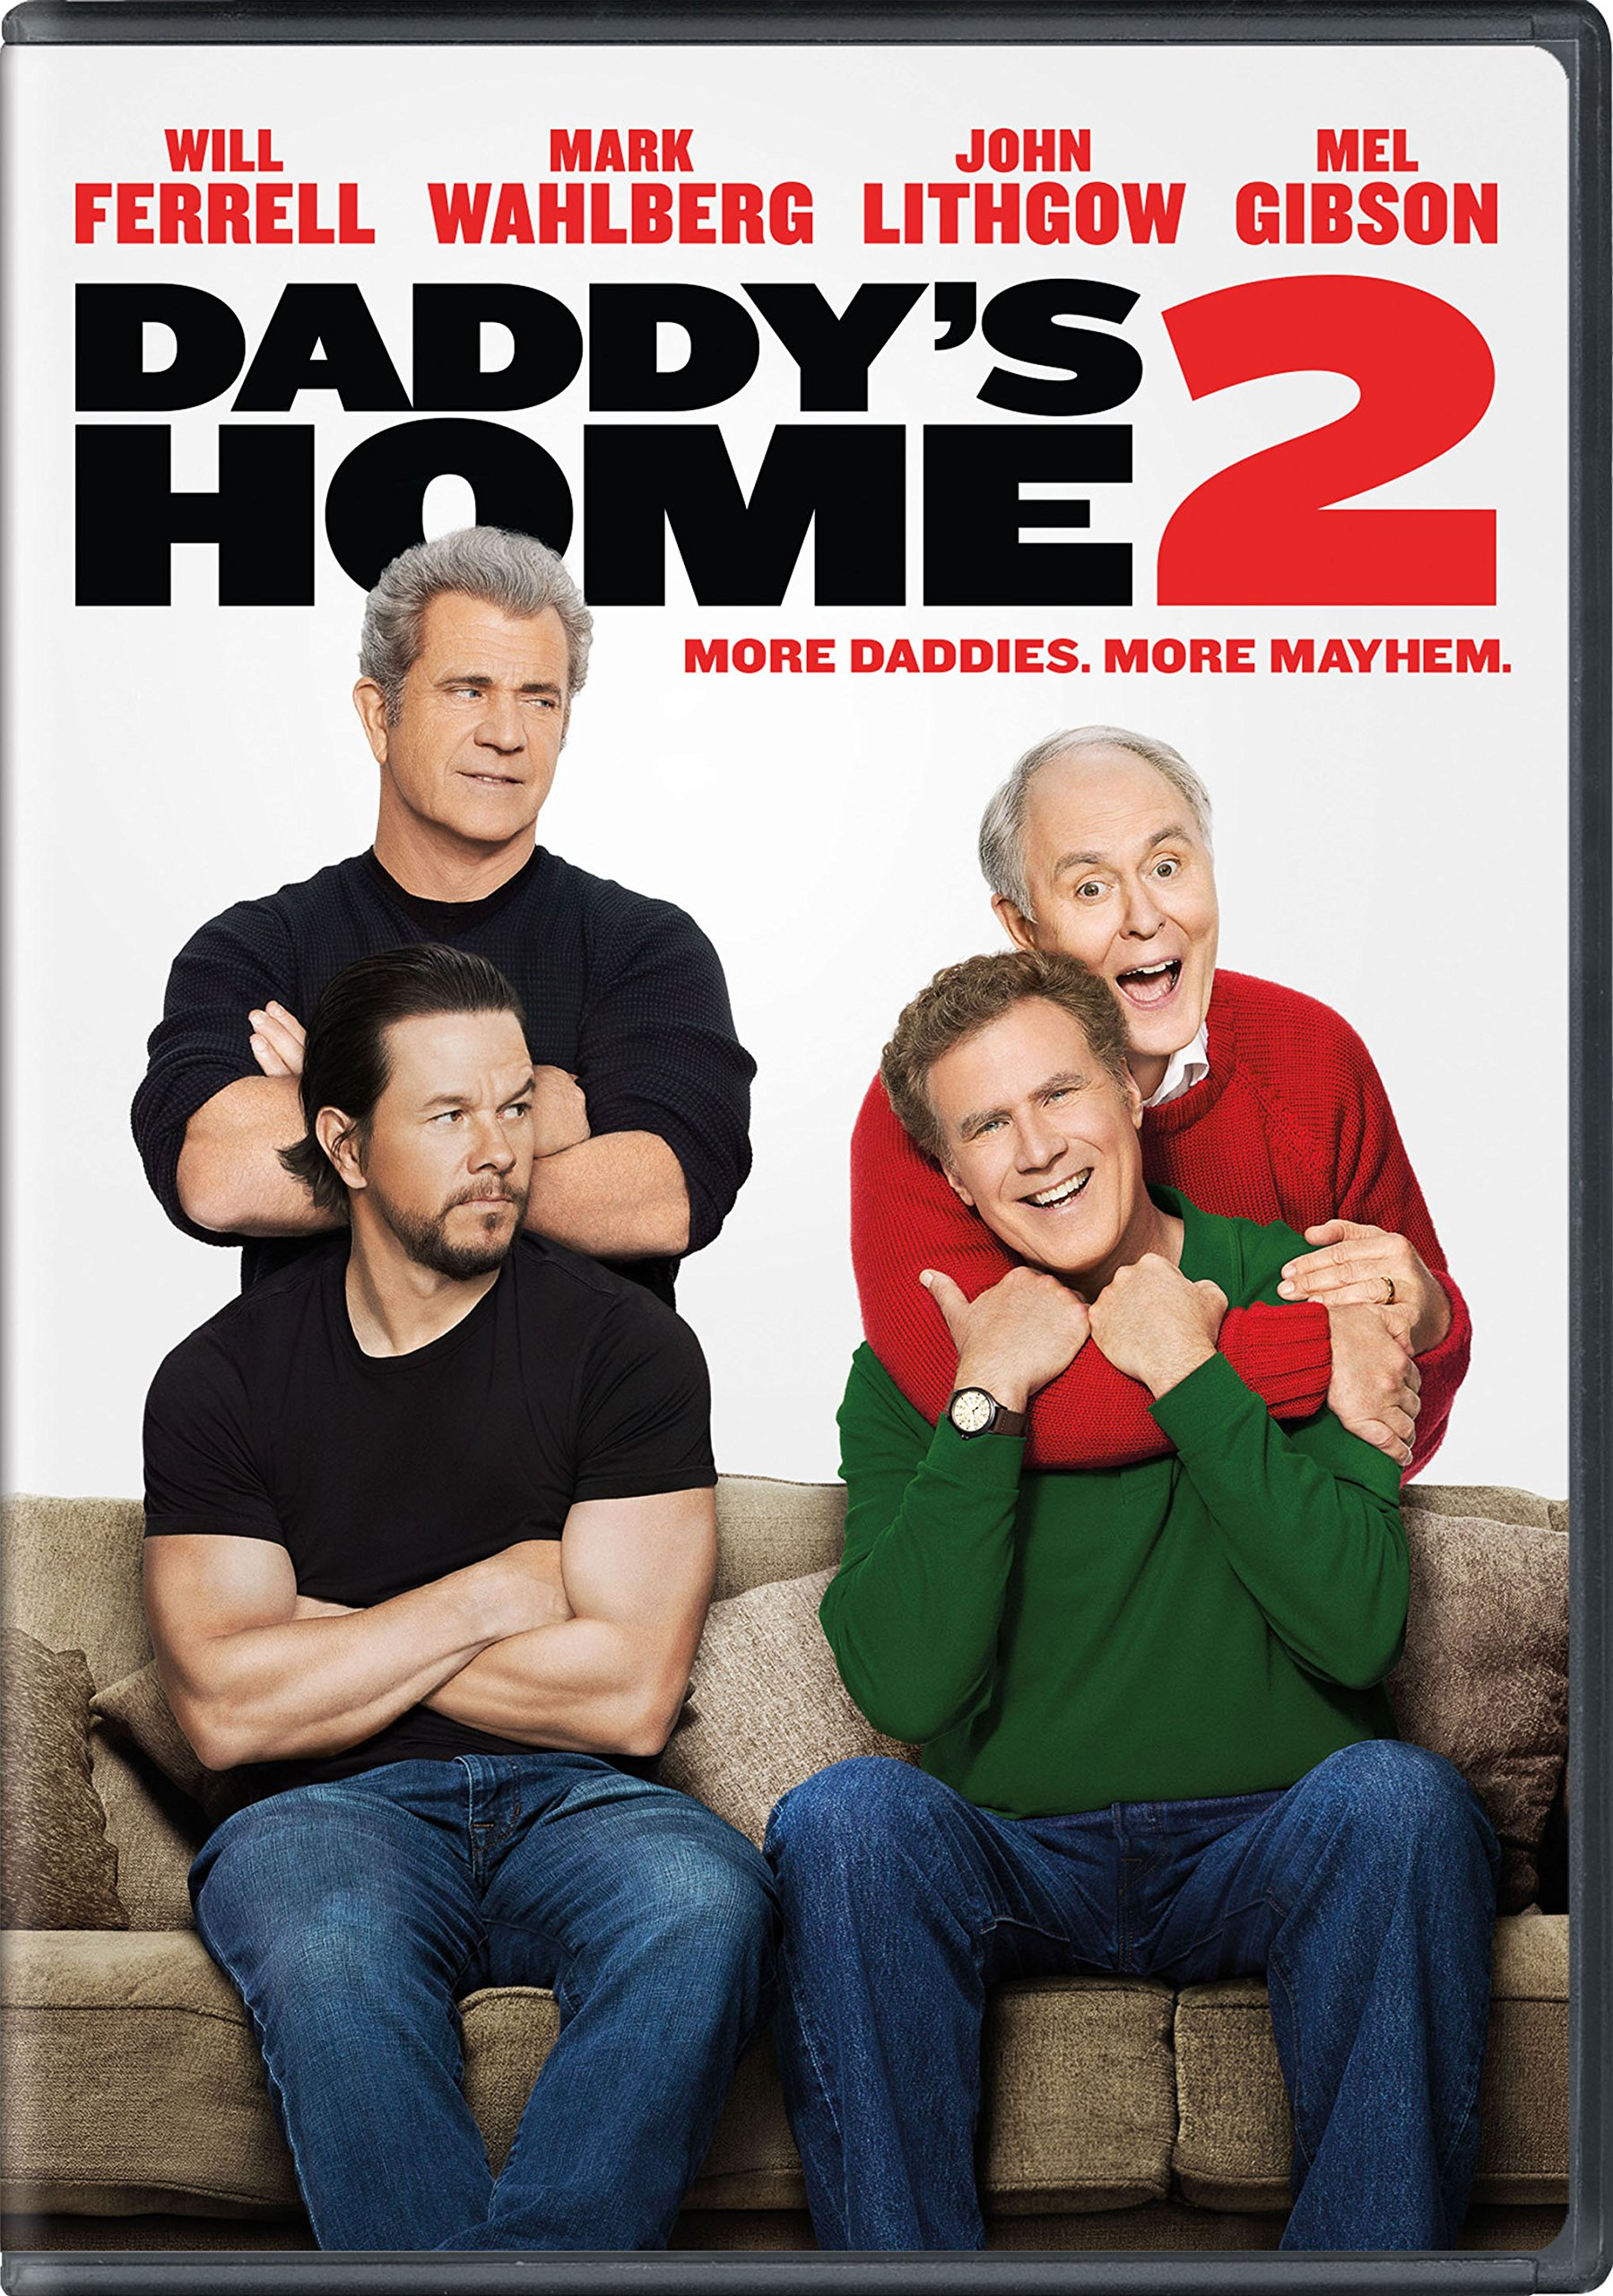 DVD : Daddy's Home 2 (Dolby, Widescreen, Amaray Case, Subtitled, Dubbed)